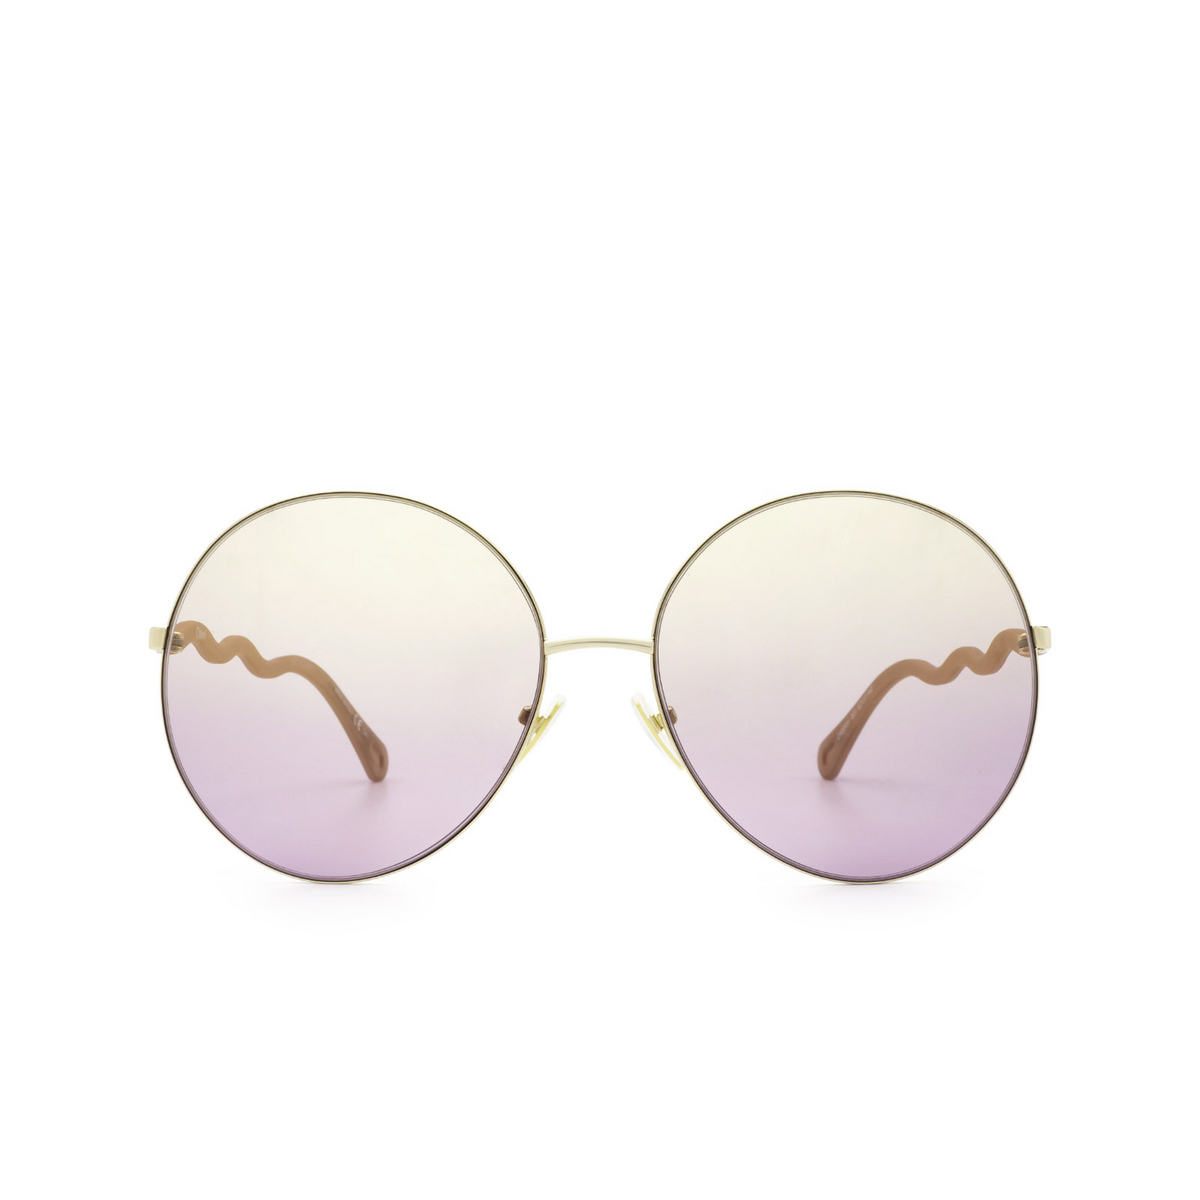 Chloé® Round Sunglasses: CH0055S color Gold 003 - front view.